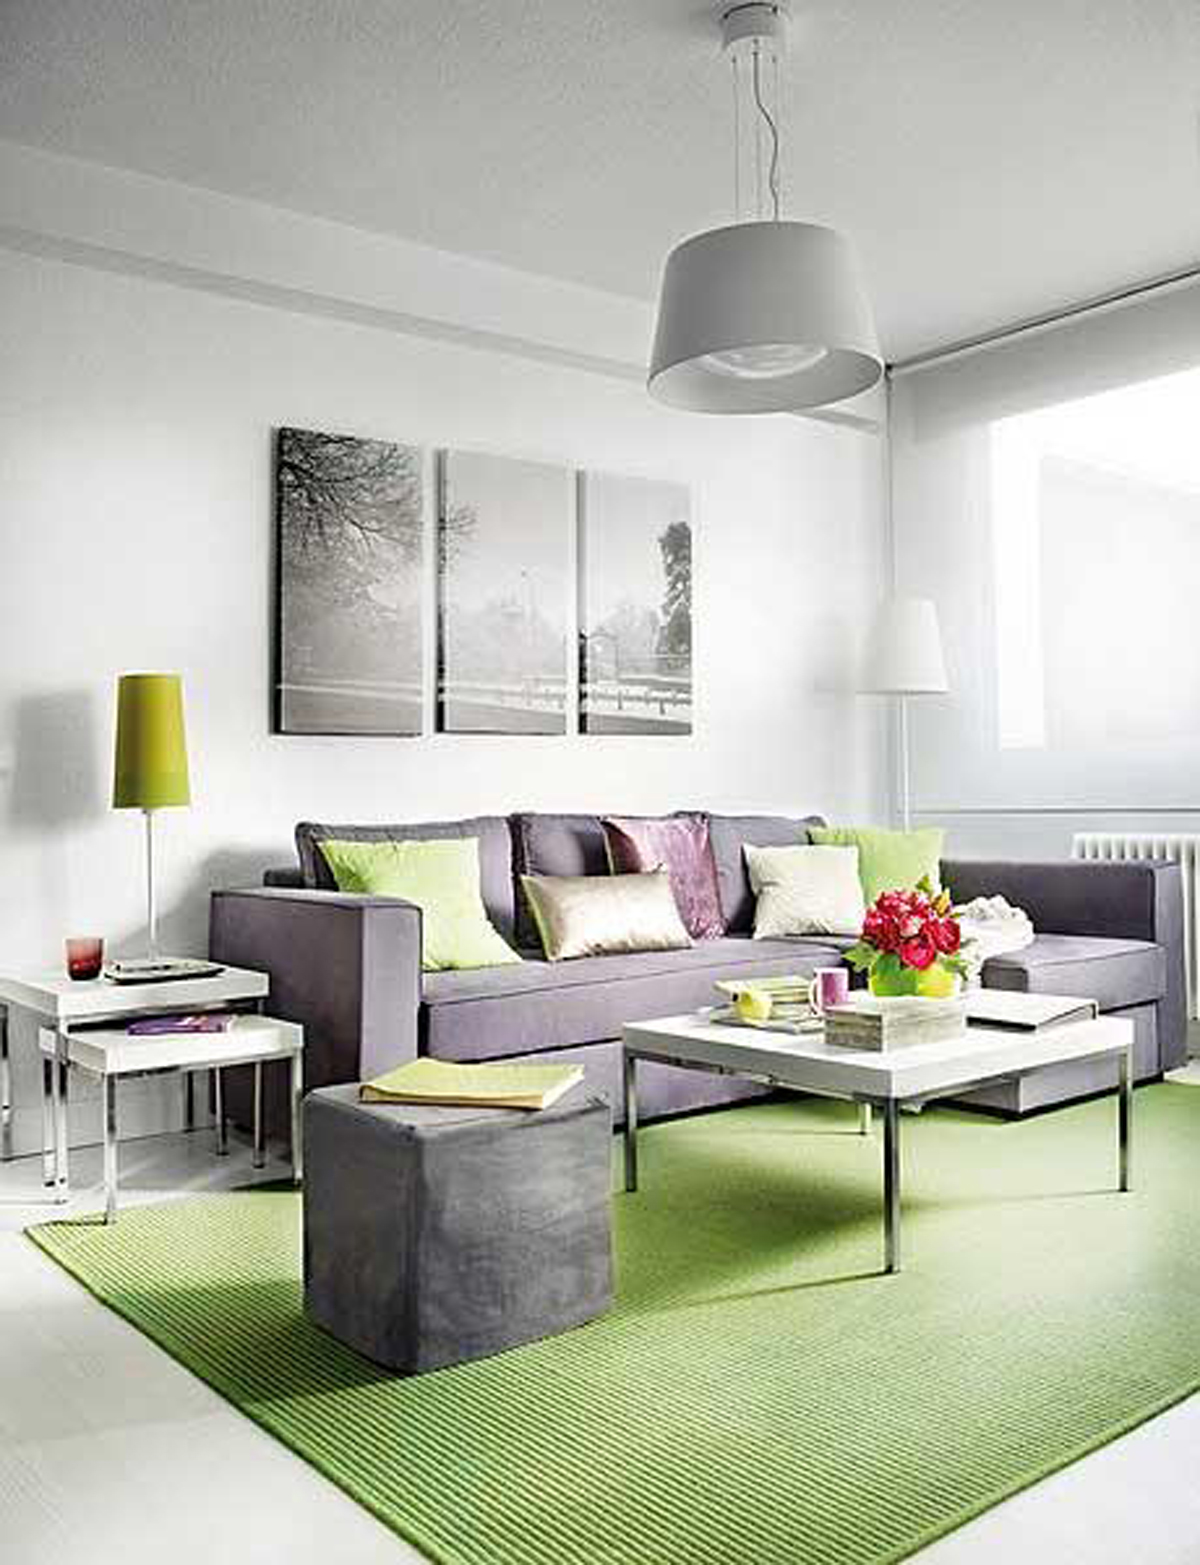 Interior design applied in small apartment architecture living room